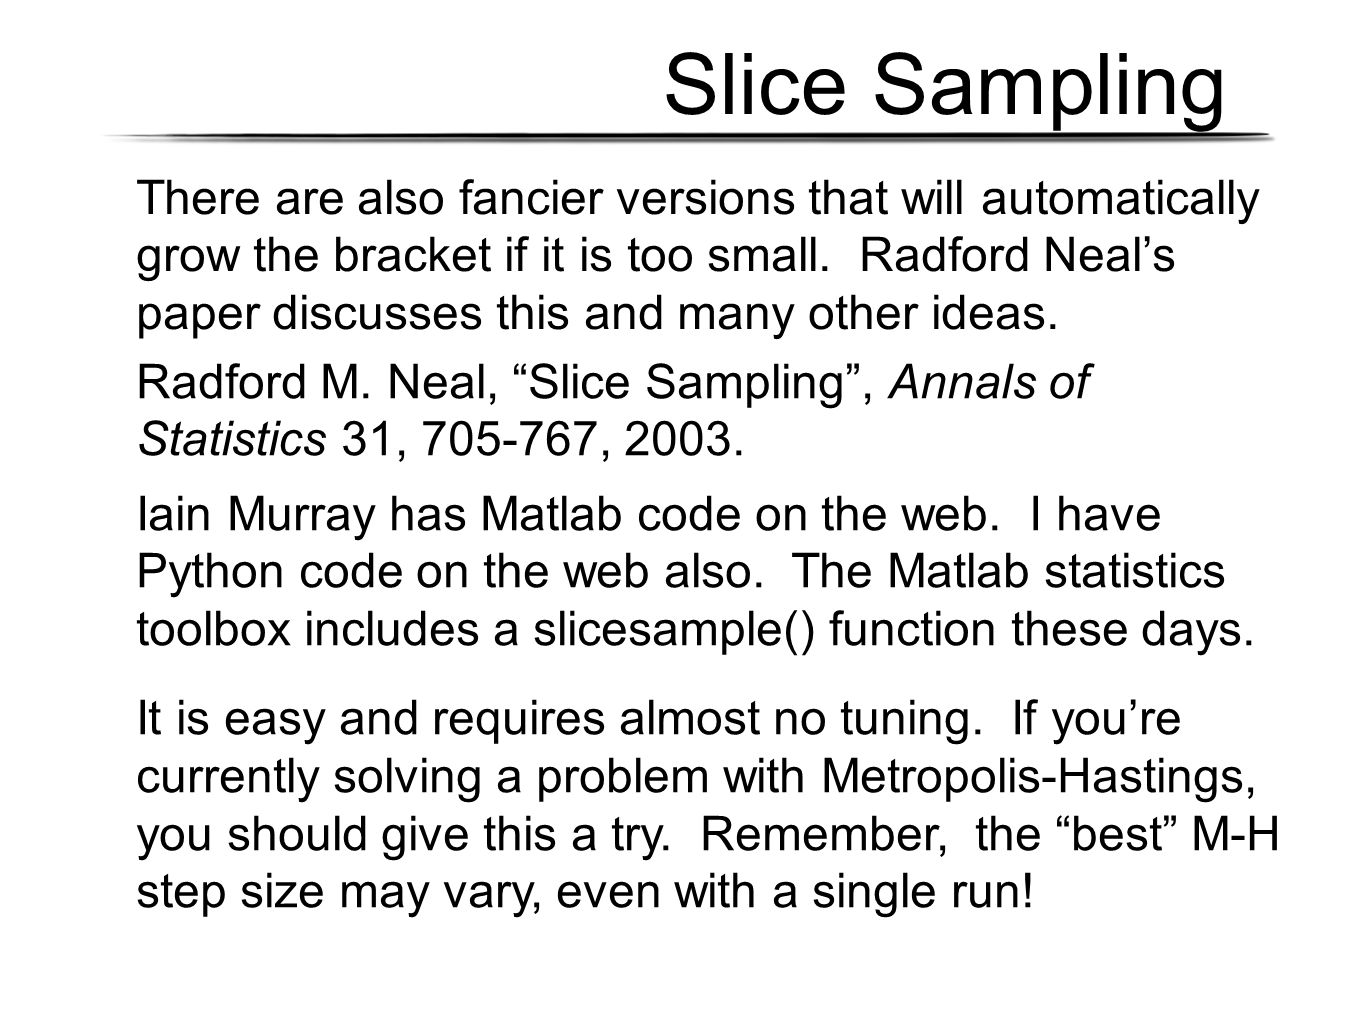 Slice Sampling There are also fancier versions that will automatically grow the bracket if it is too small. Radford Neal's paper discusses this and ma